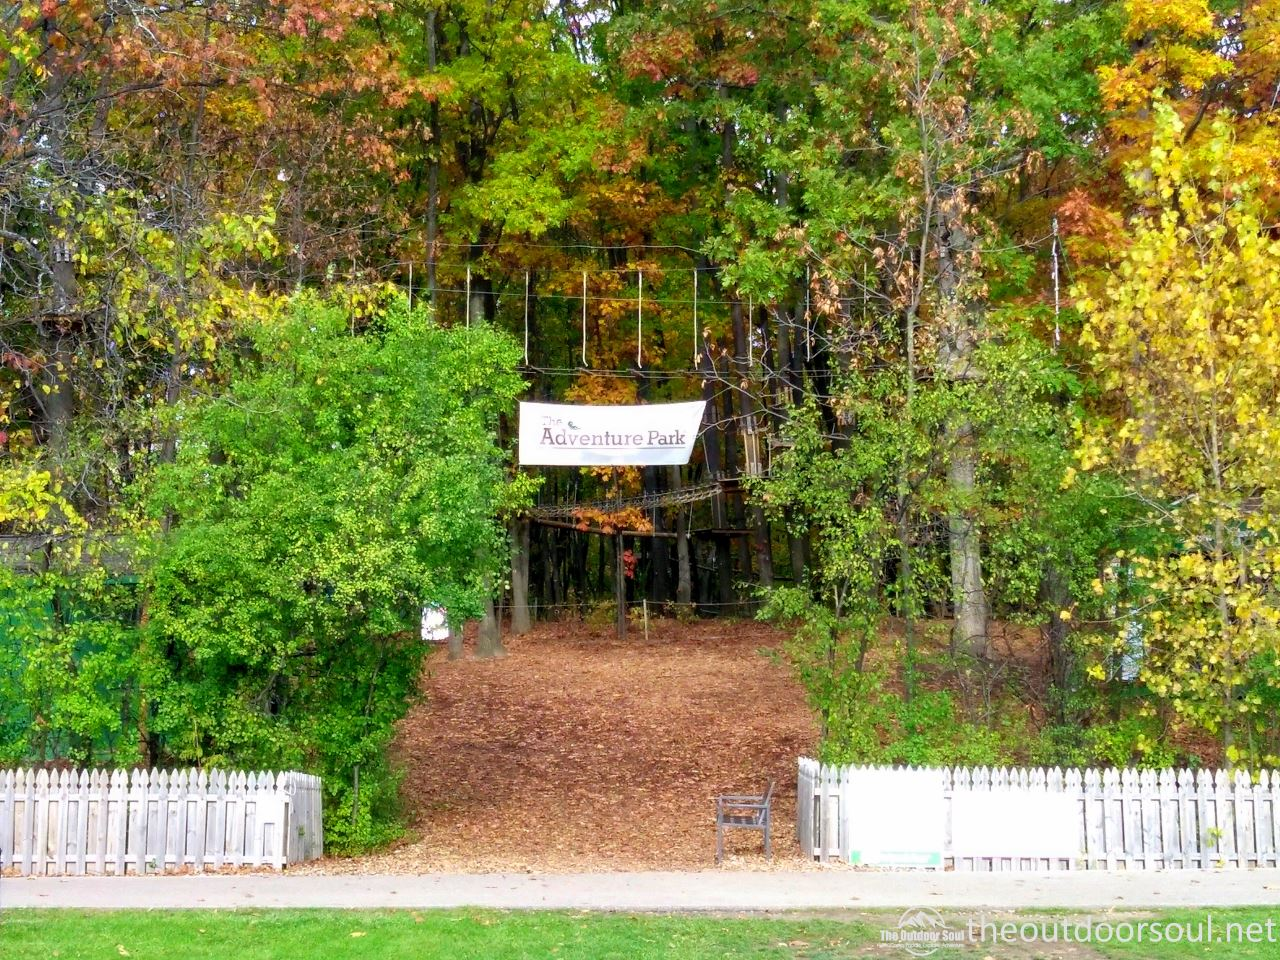 adventure park west bloomfield entrance sign